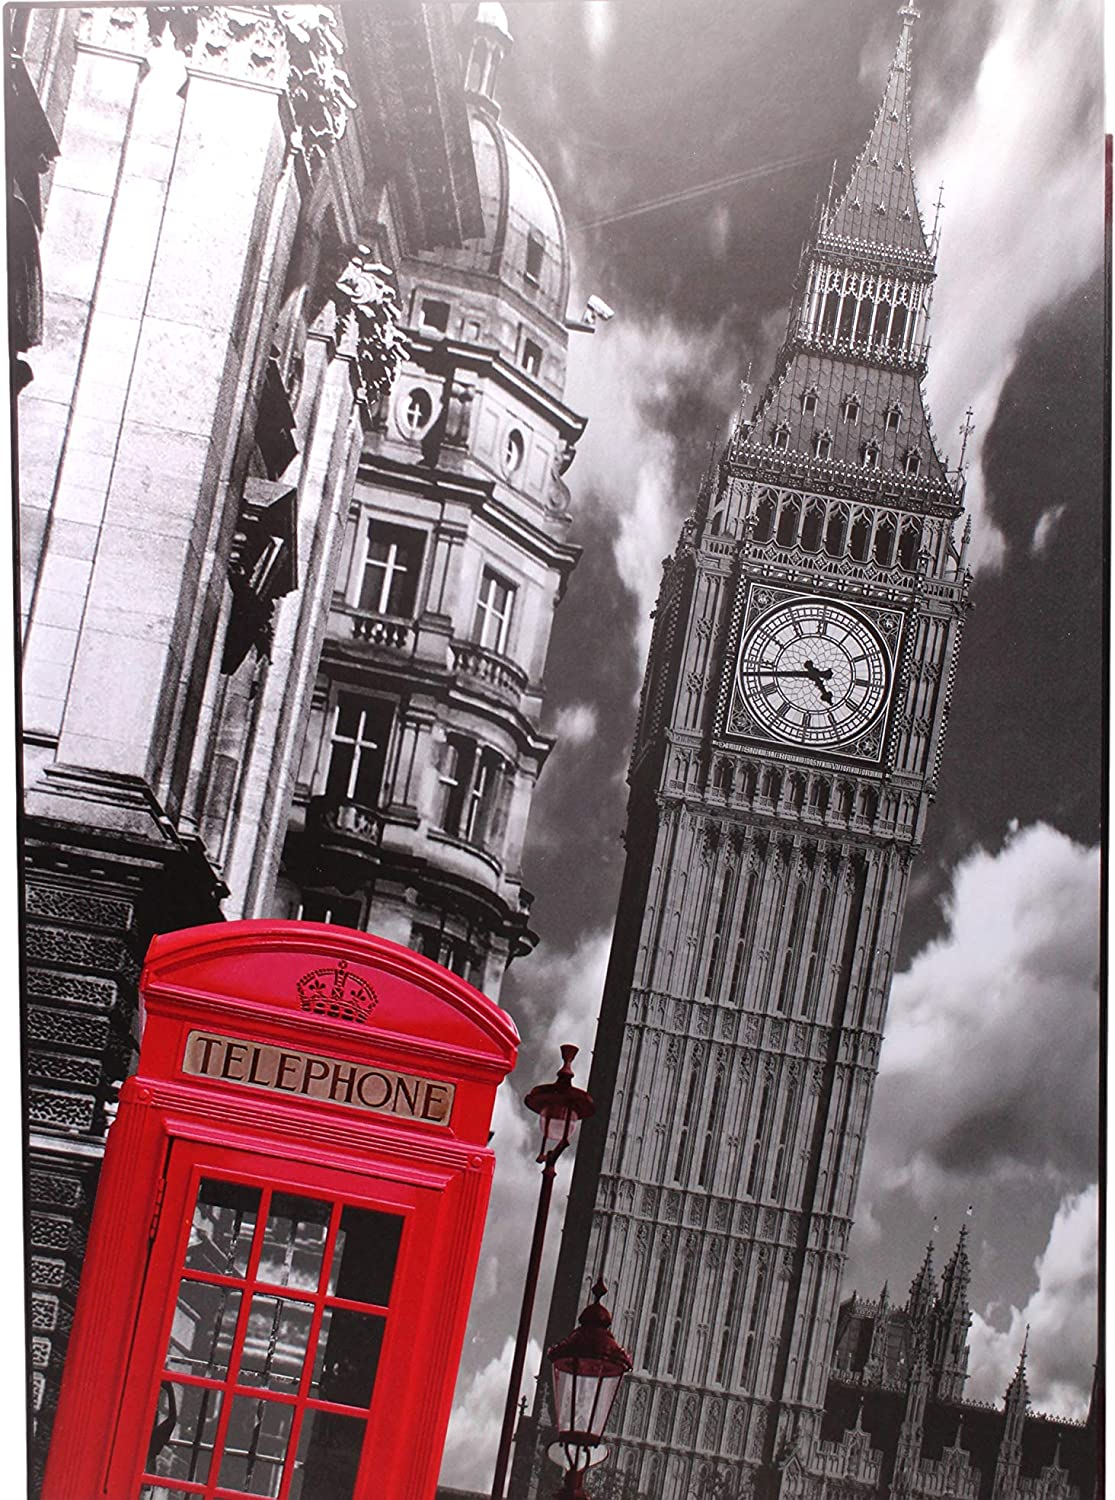 Big Ben 1000 Large Piece Jigsaw Puzzle for Kids Adults - 70 x 50cm Size